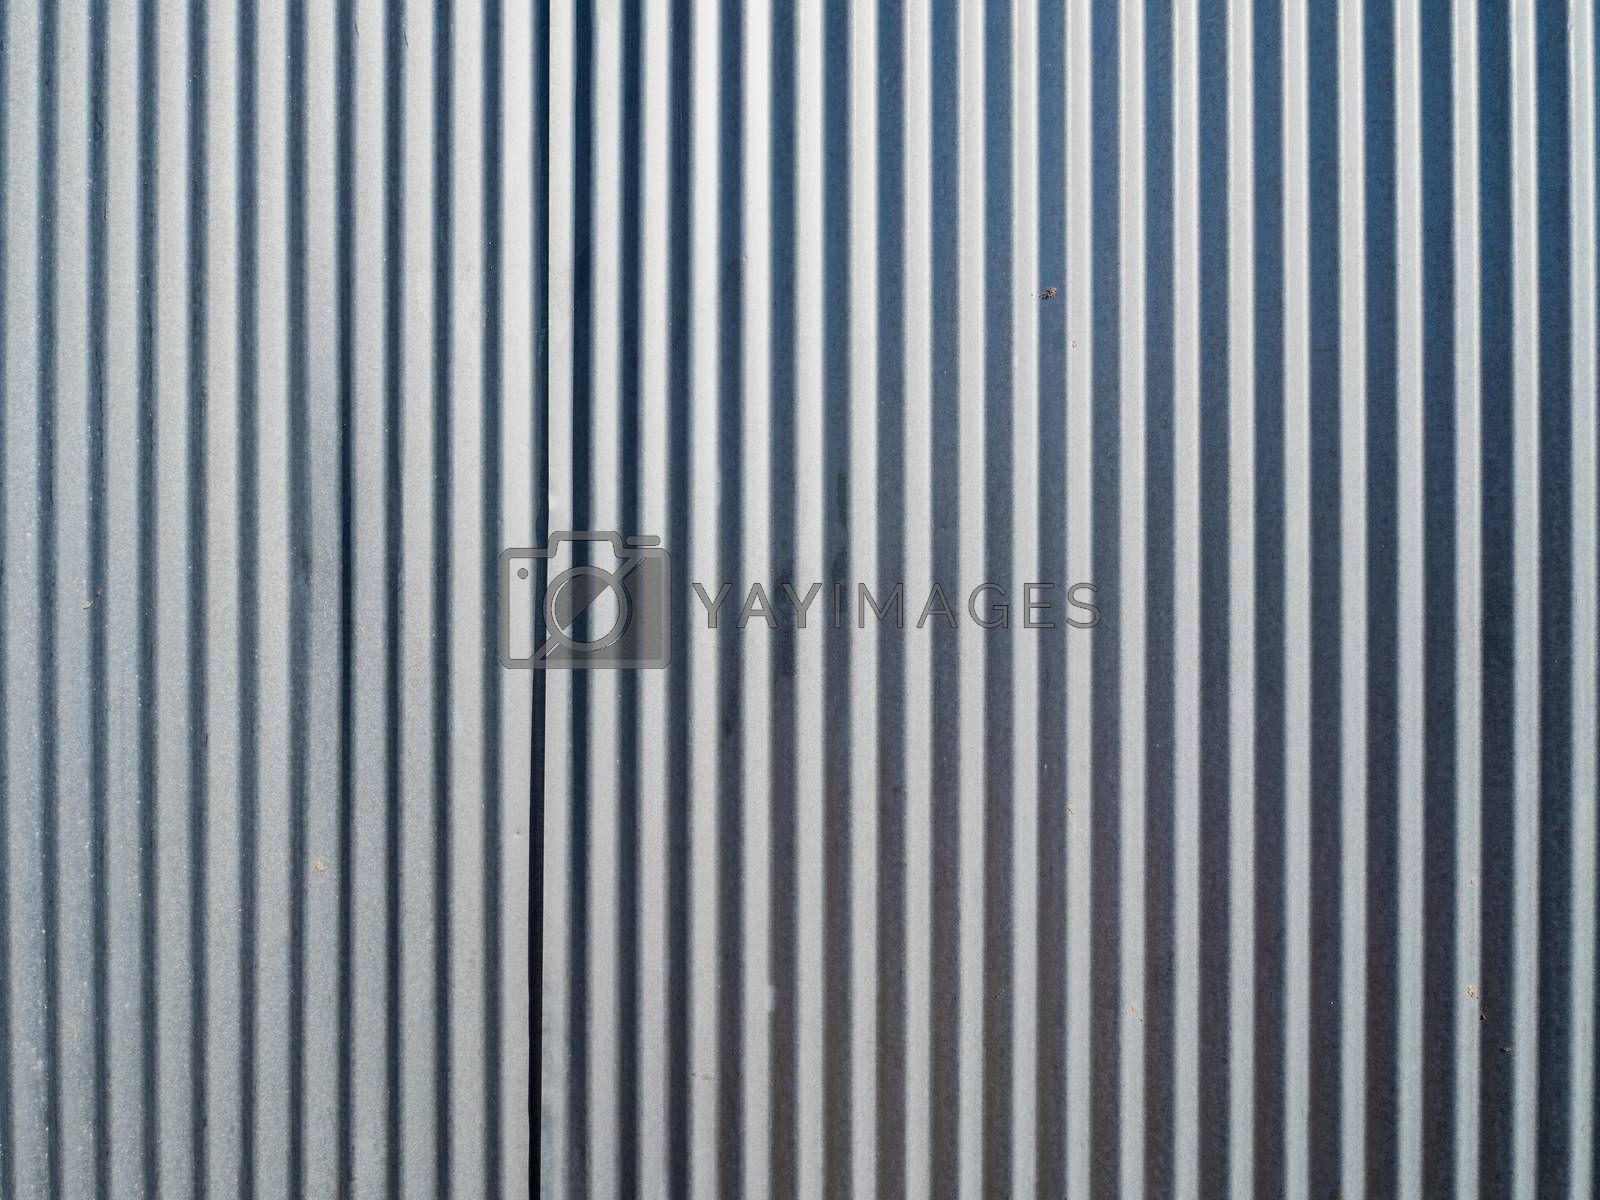 close up of corrugated sheet metal texture background